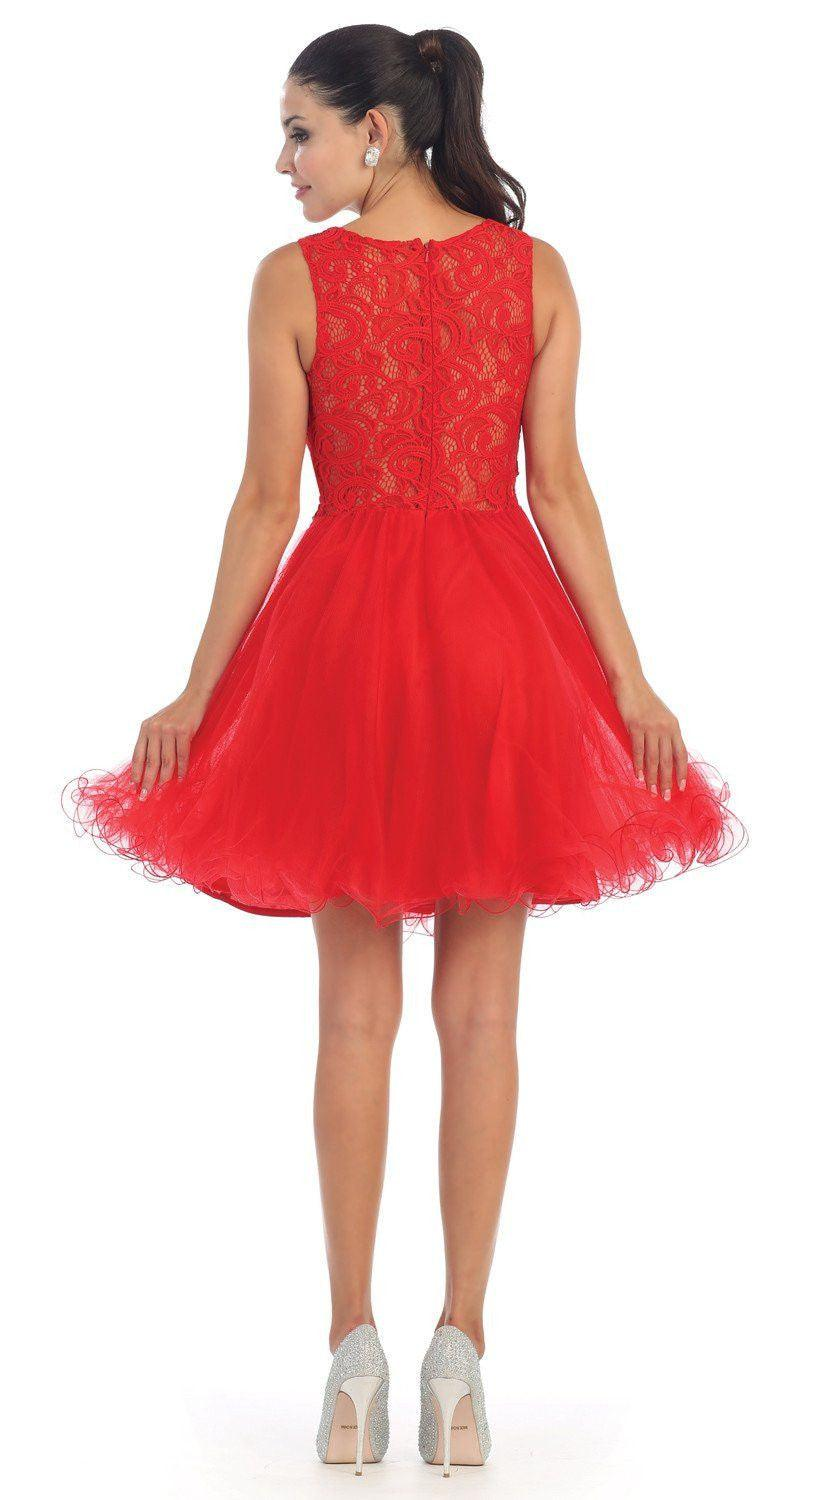 Short Prom Formal Homecoming Dress - The Dress Outlet  May Queen